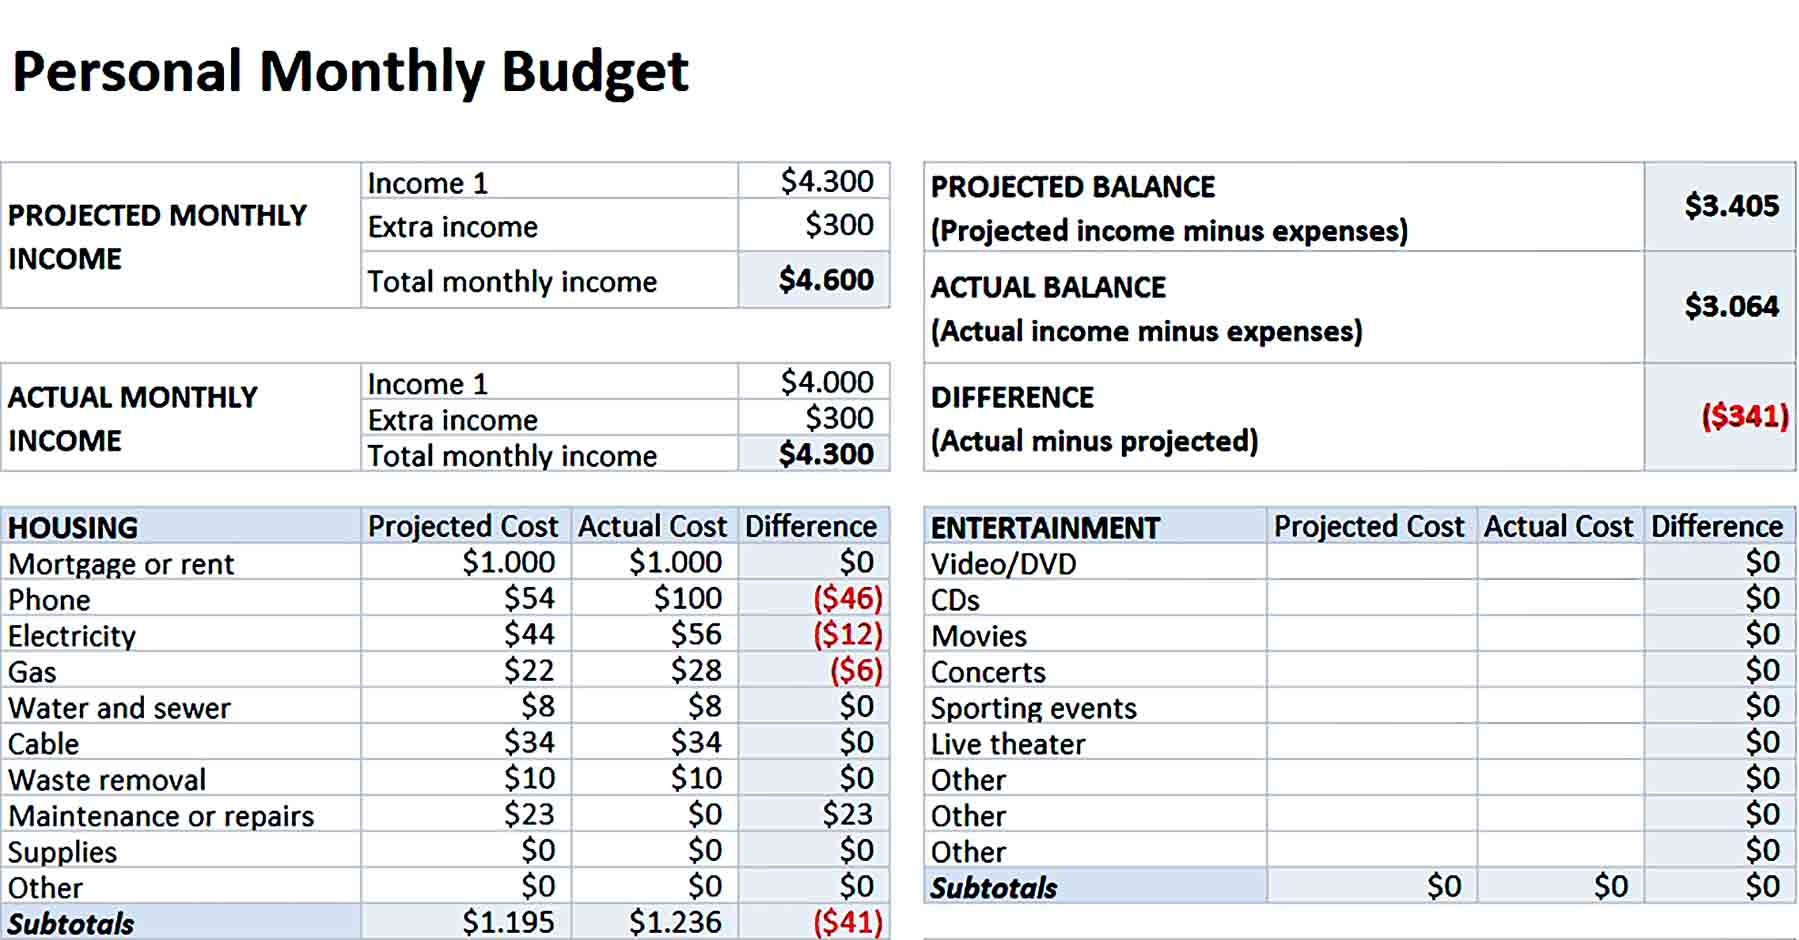 Sample Personal Monthly Budget